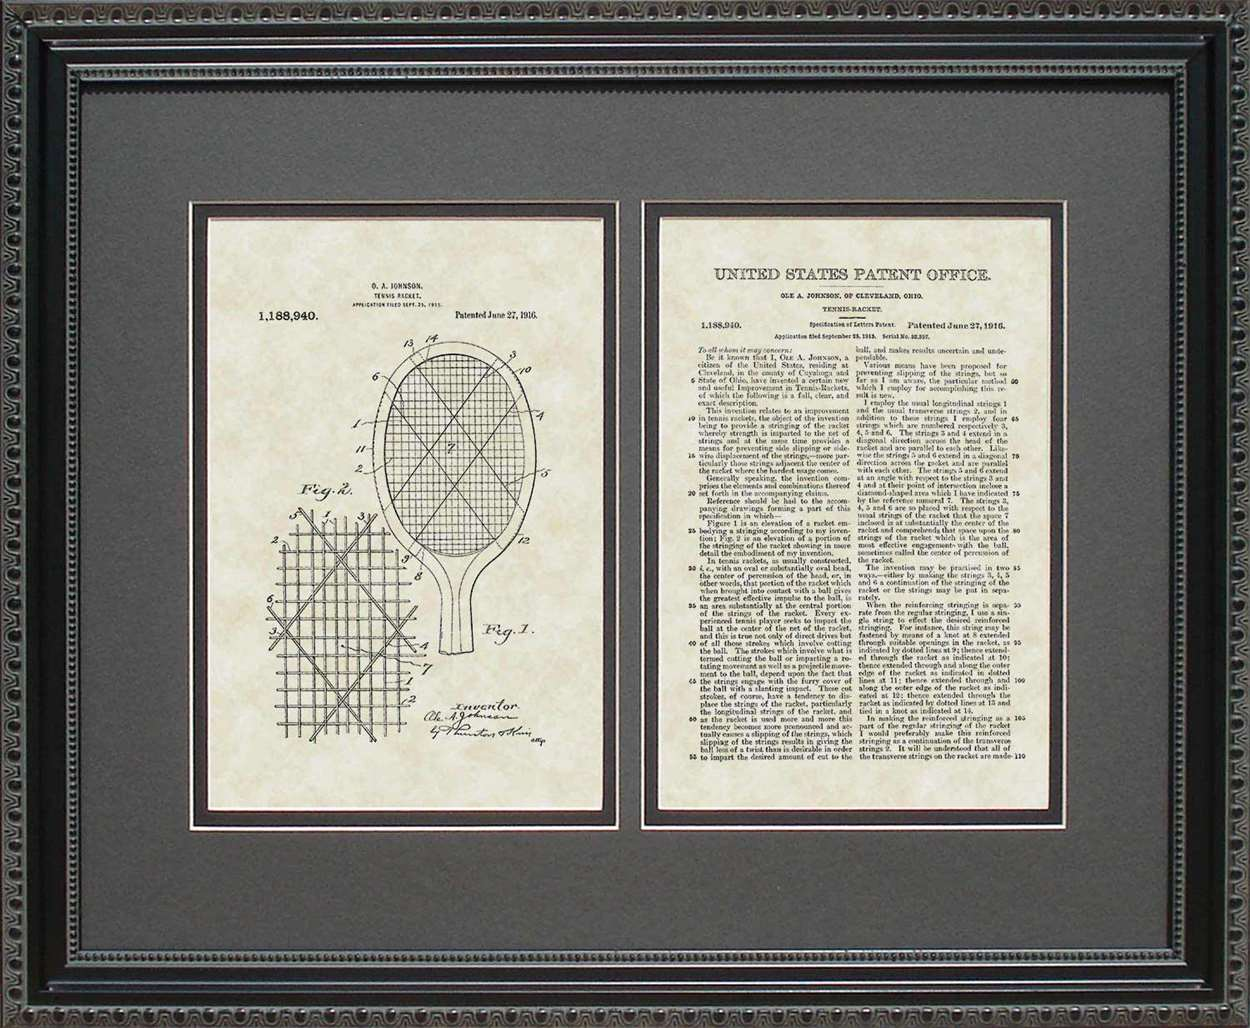 Tennis Racket Patent, Art & Copy, Johnson, 1916, 16x20